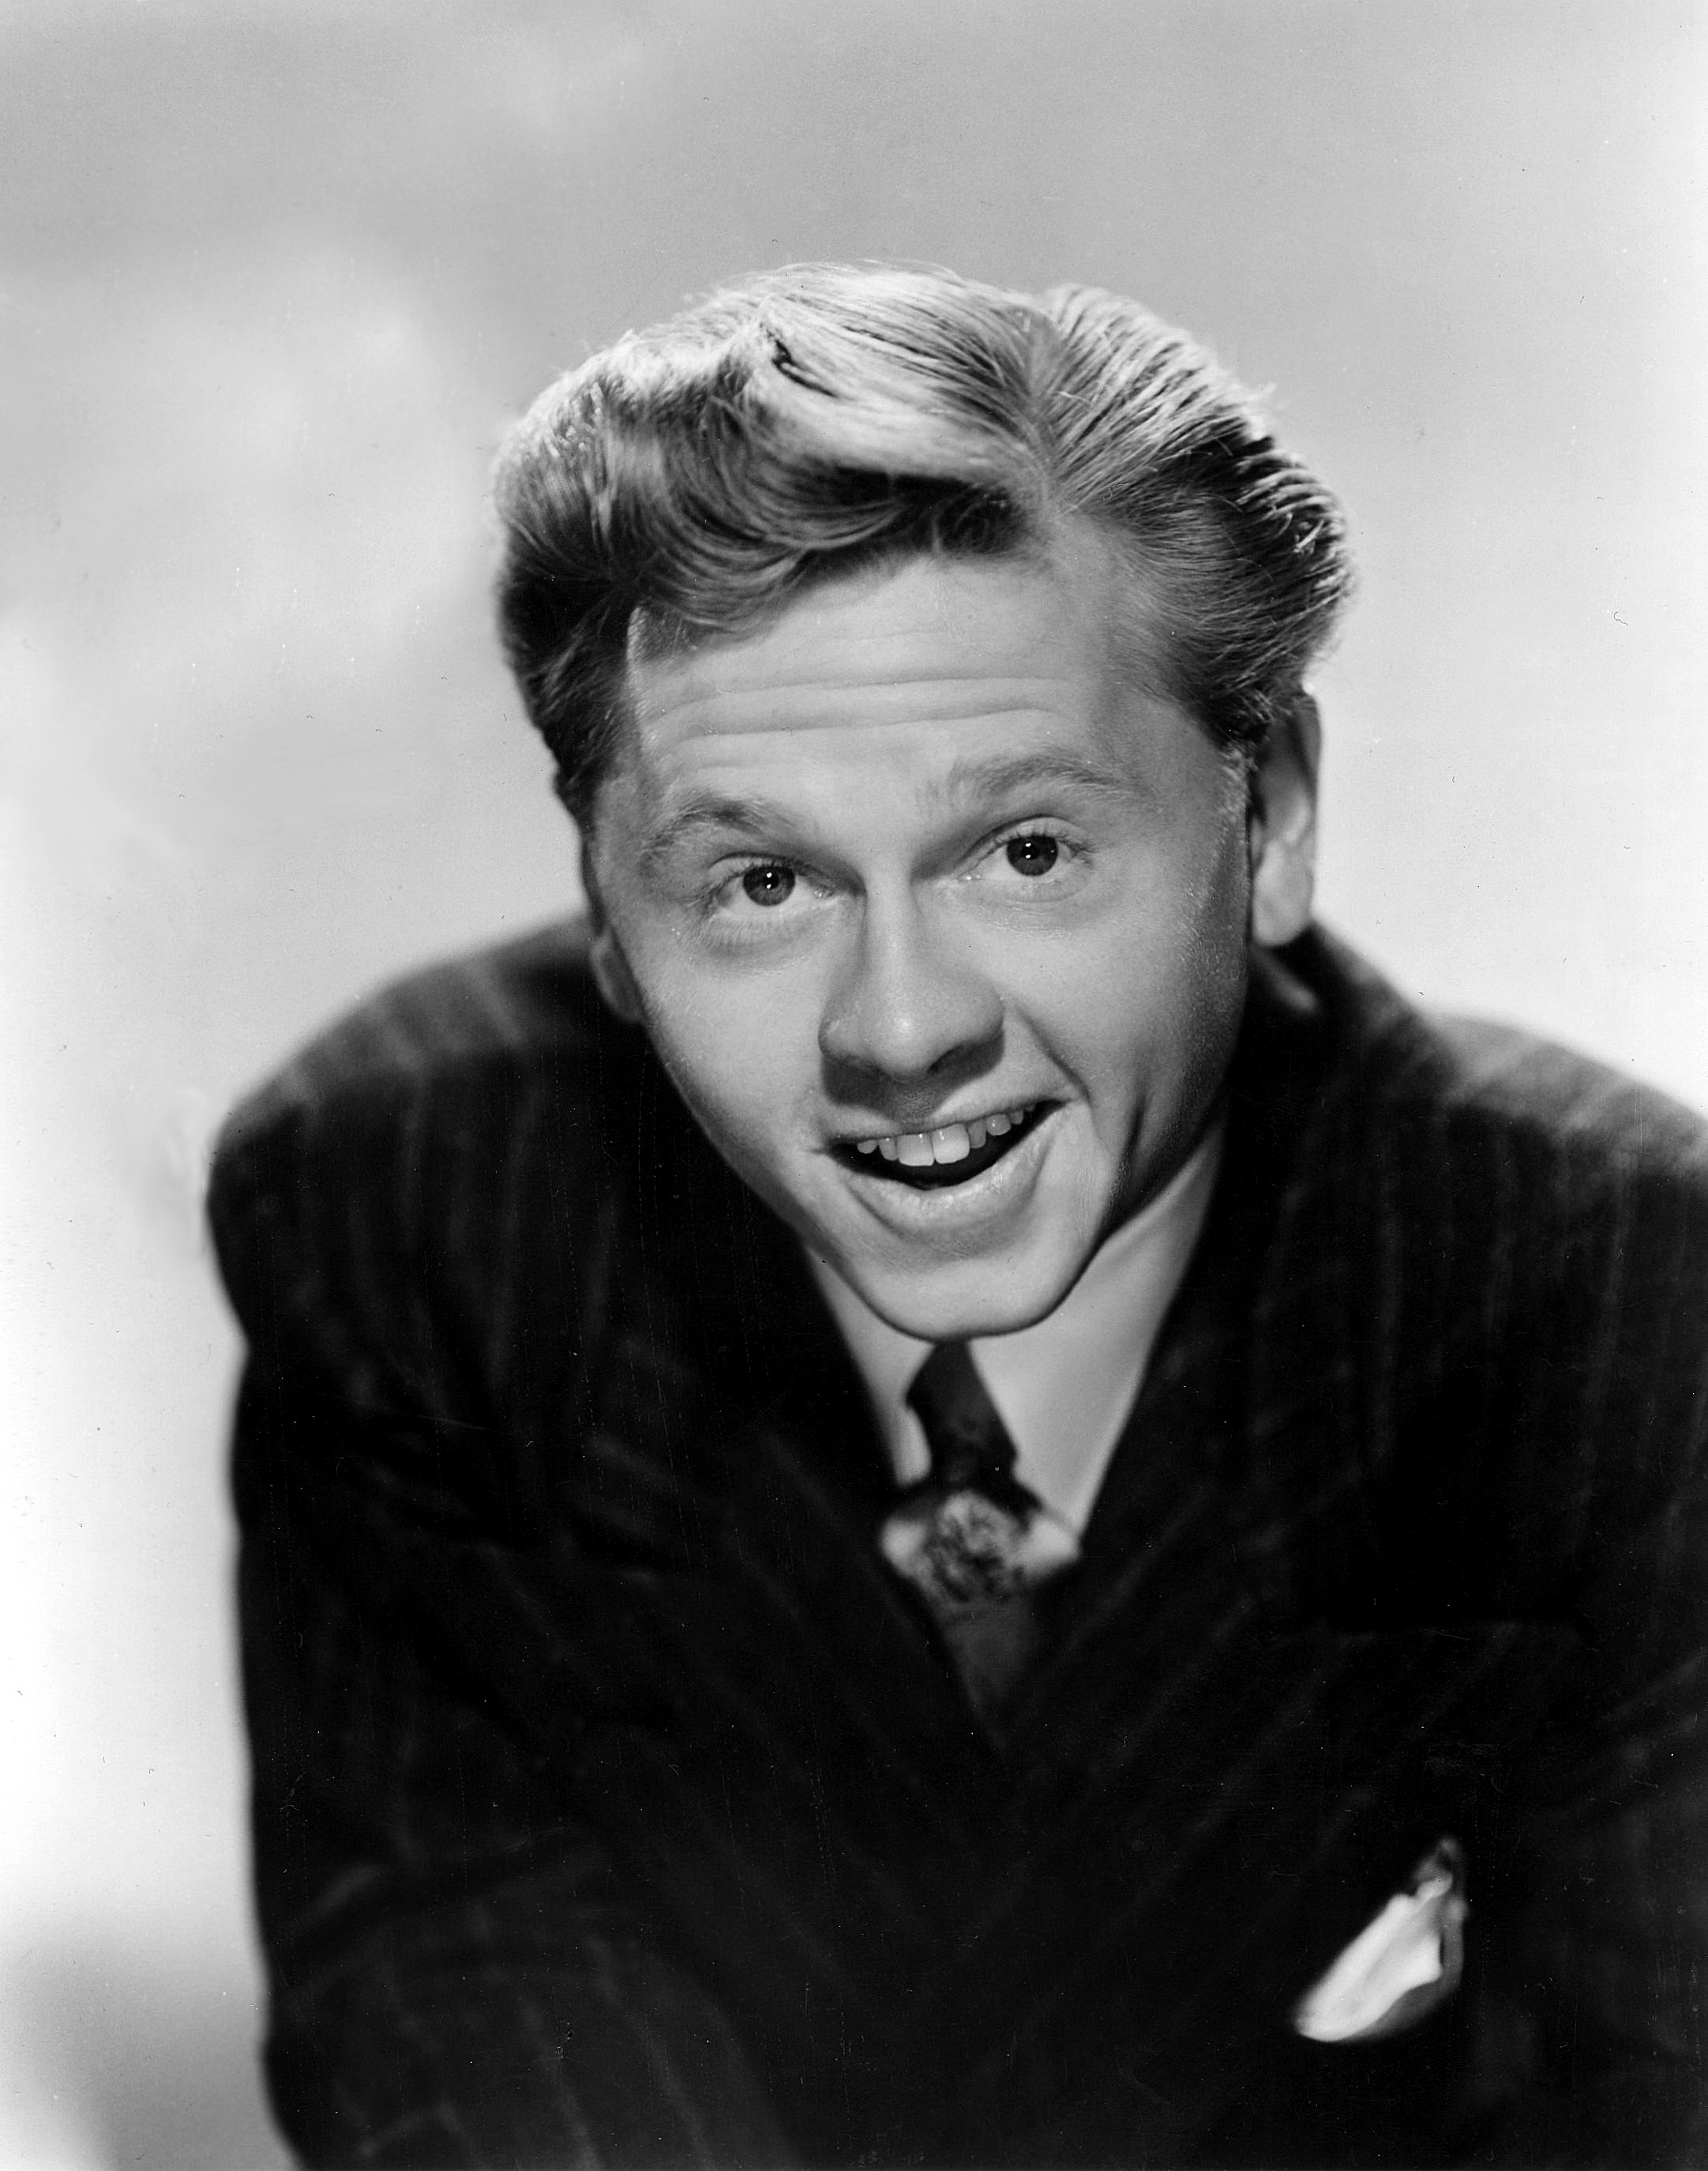 Mickey Rooney has IMDb credits from 1926 to 2016....90 years!